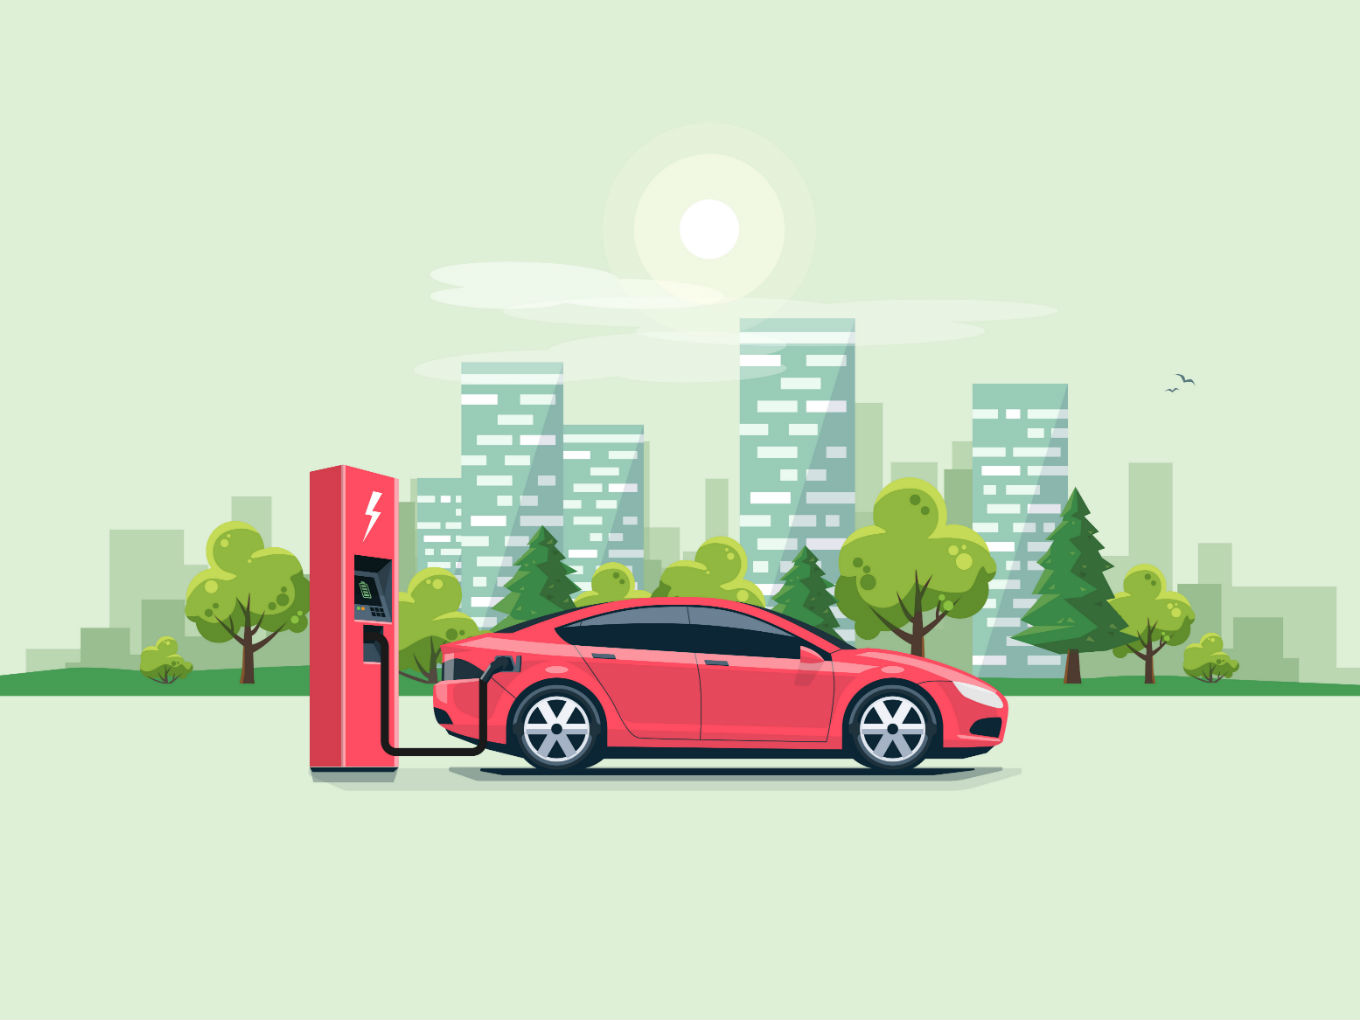 EV Taxis To Get Incentives, Policy On The Cards: Gujarat Govt